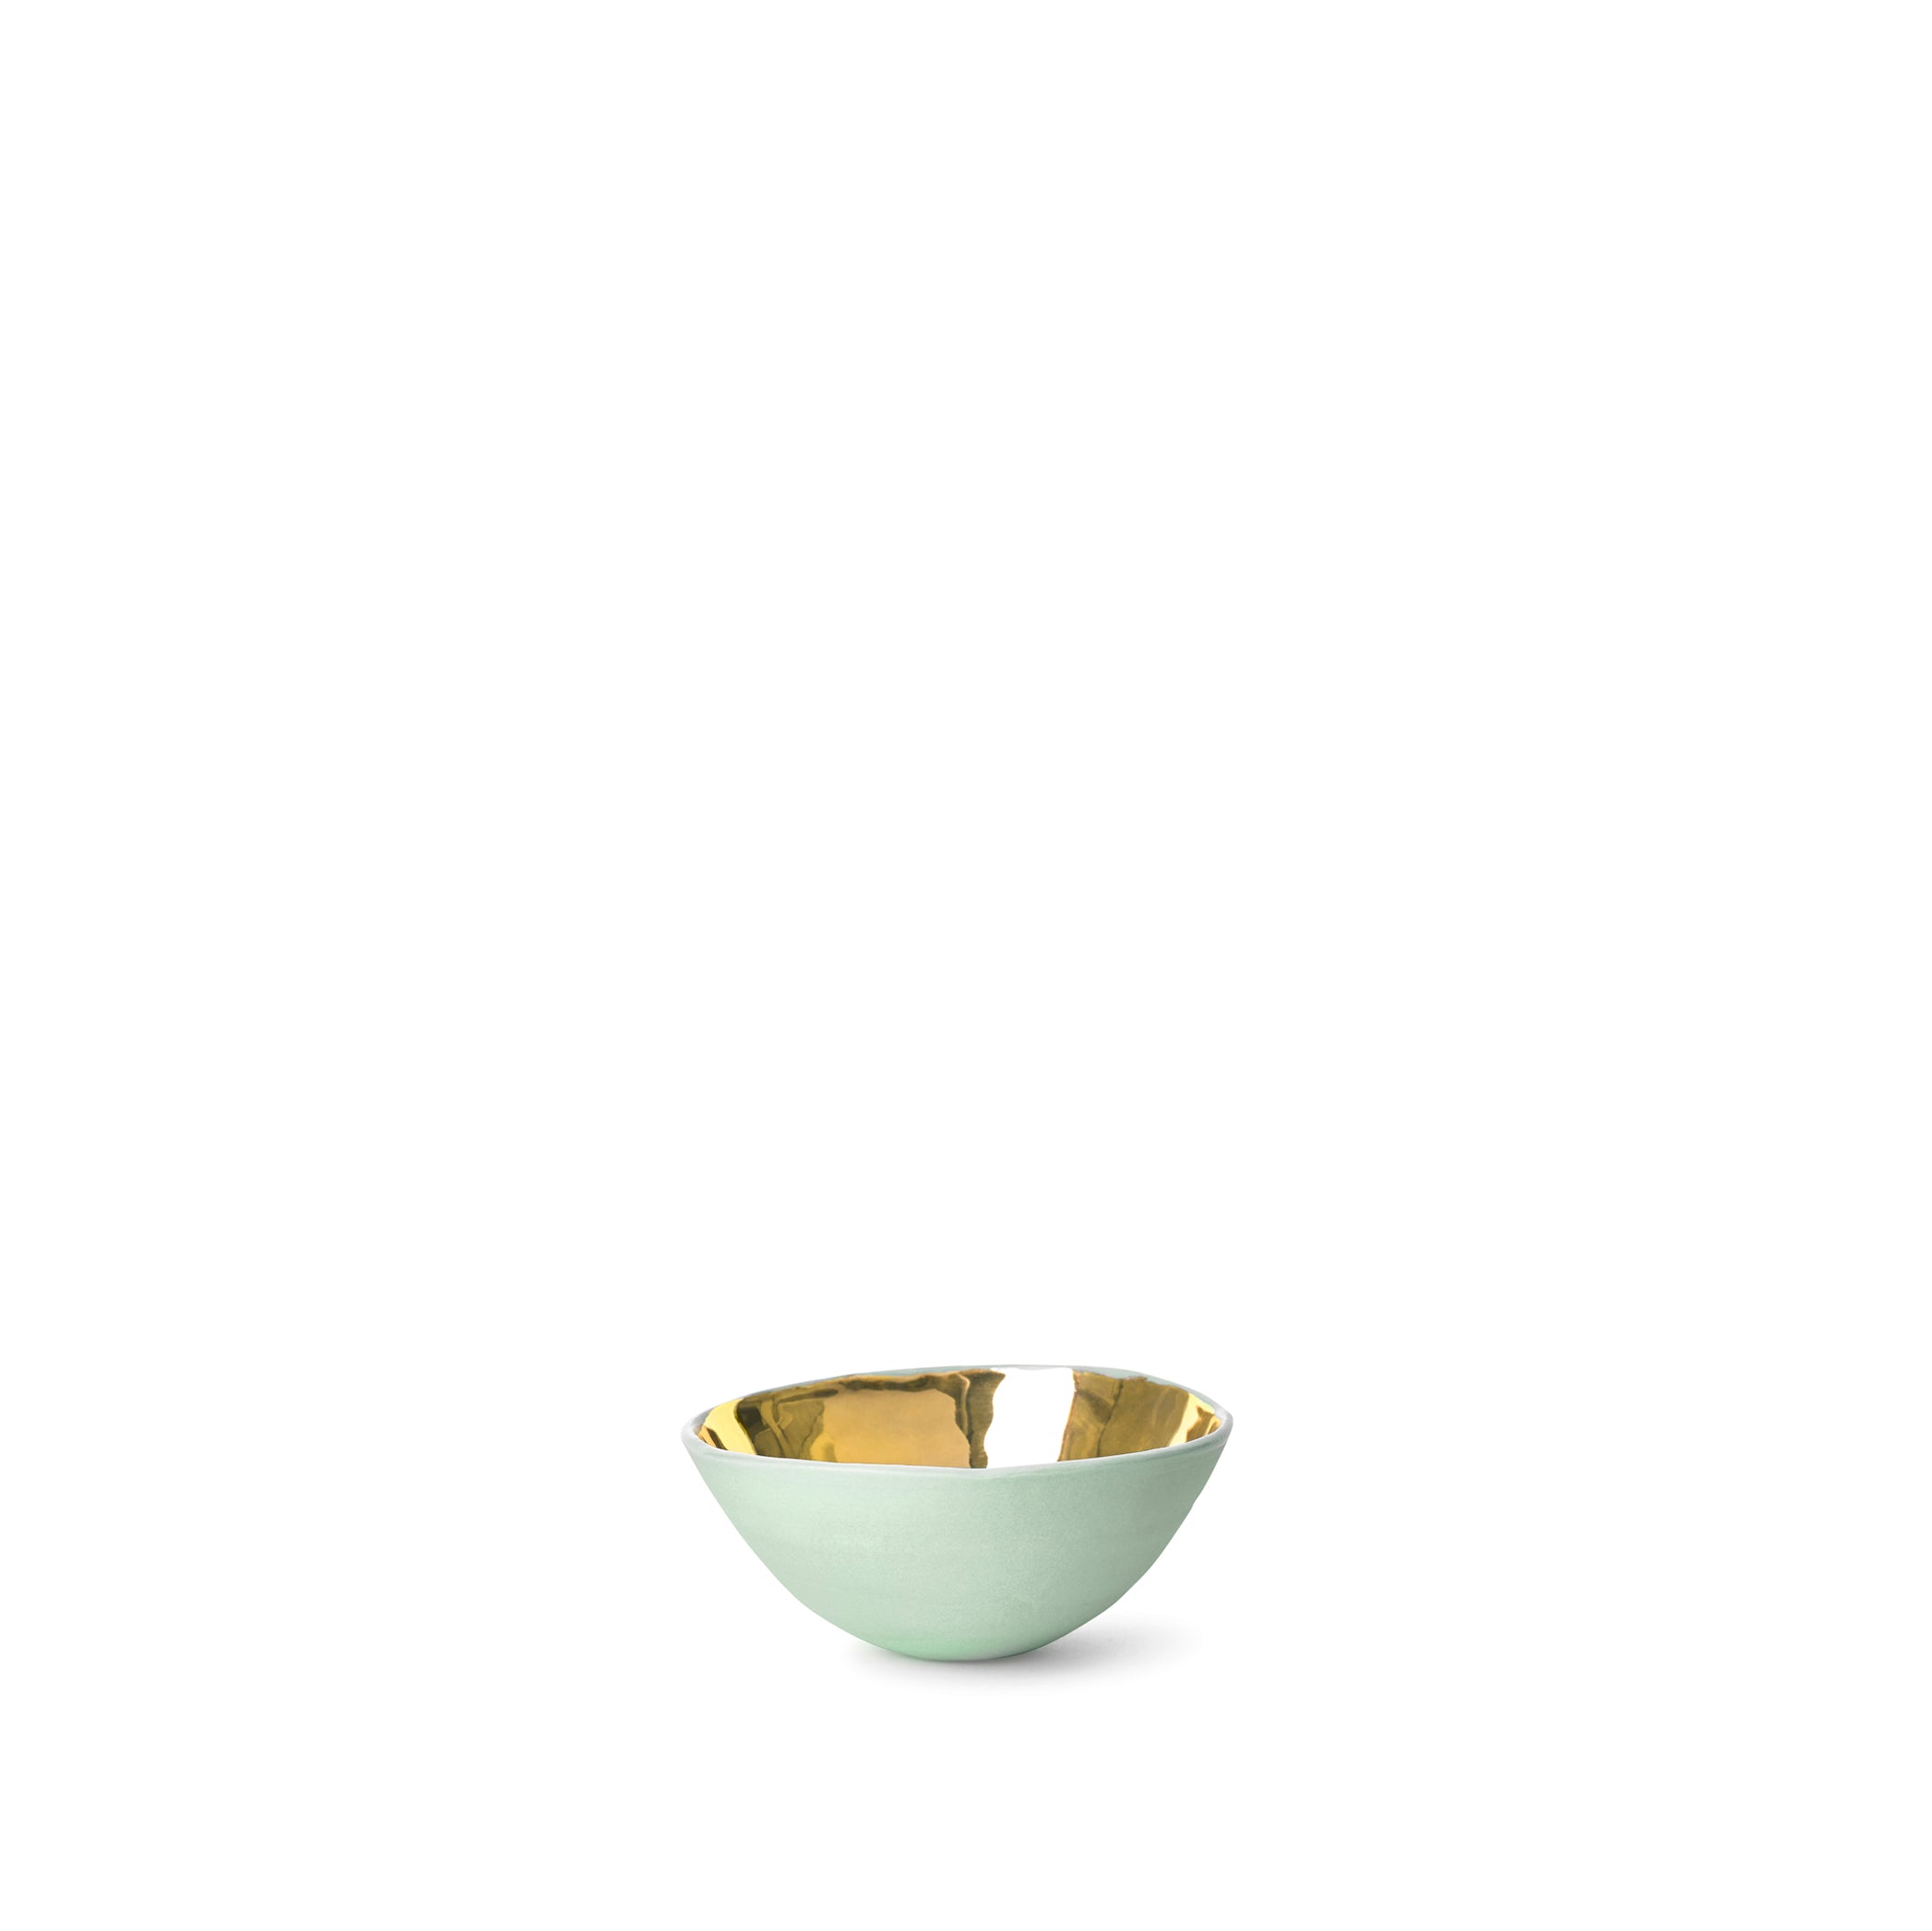 Full Painted Green Ceramic Bowl with Gold Glaze, 6cm